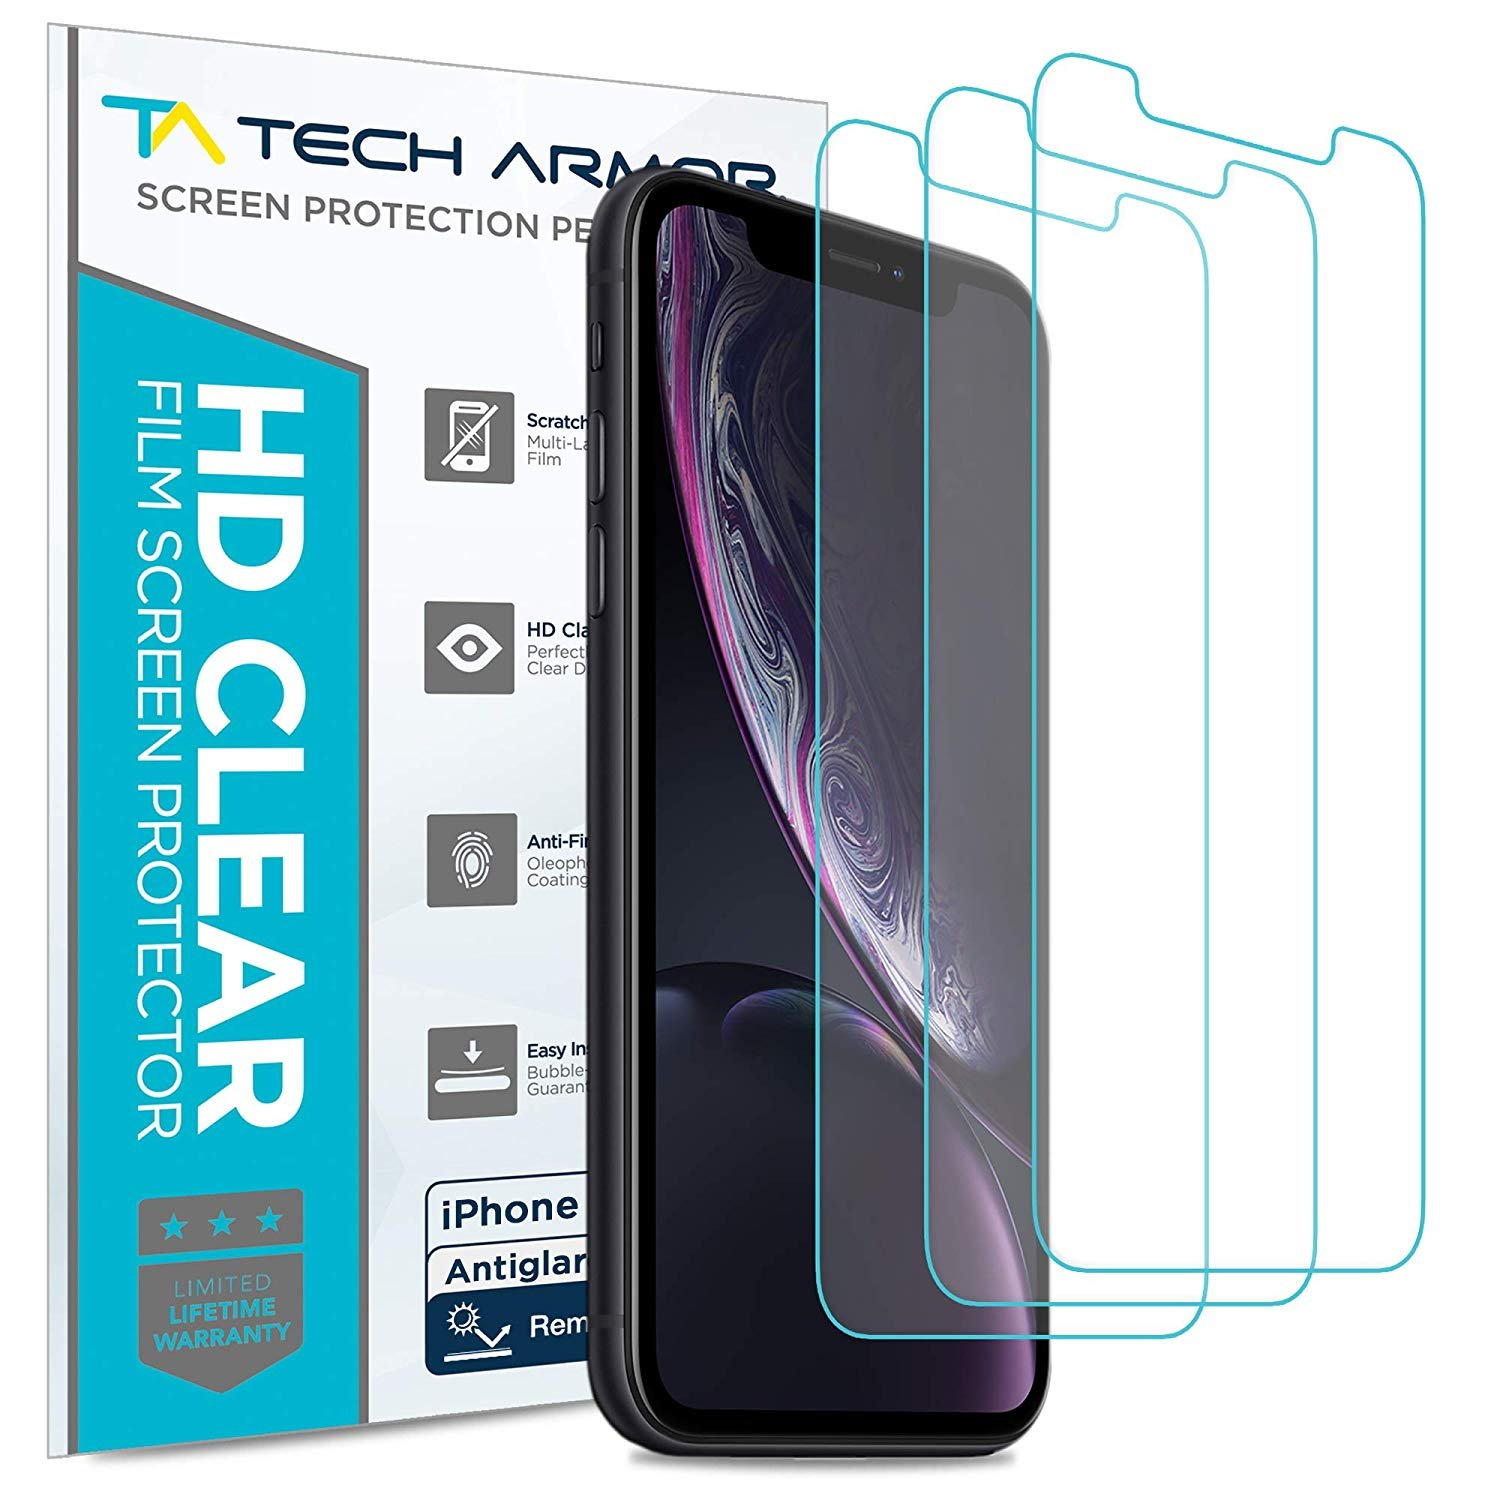 Tech Armor Apple iPhone Xr Matte Anti-Glare/Anti-Fingerprint Film Screen Protector [3-Pack] Case-Friendly Tempered Glass, Haptic Touch Accurate Designed for New 2018 Apple iPhone Xr